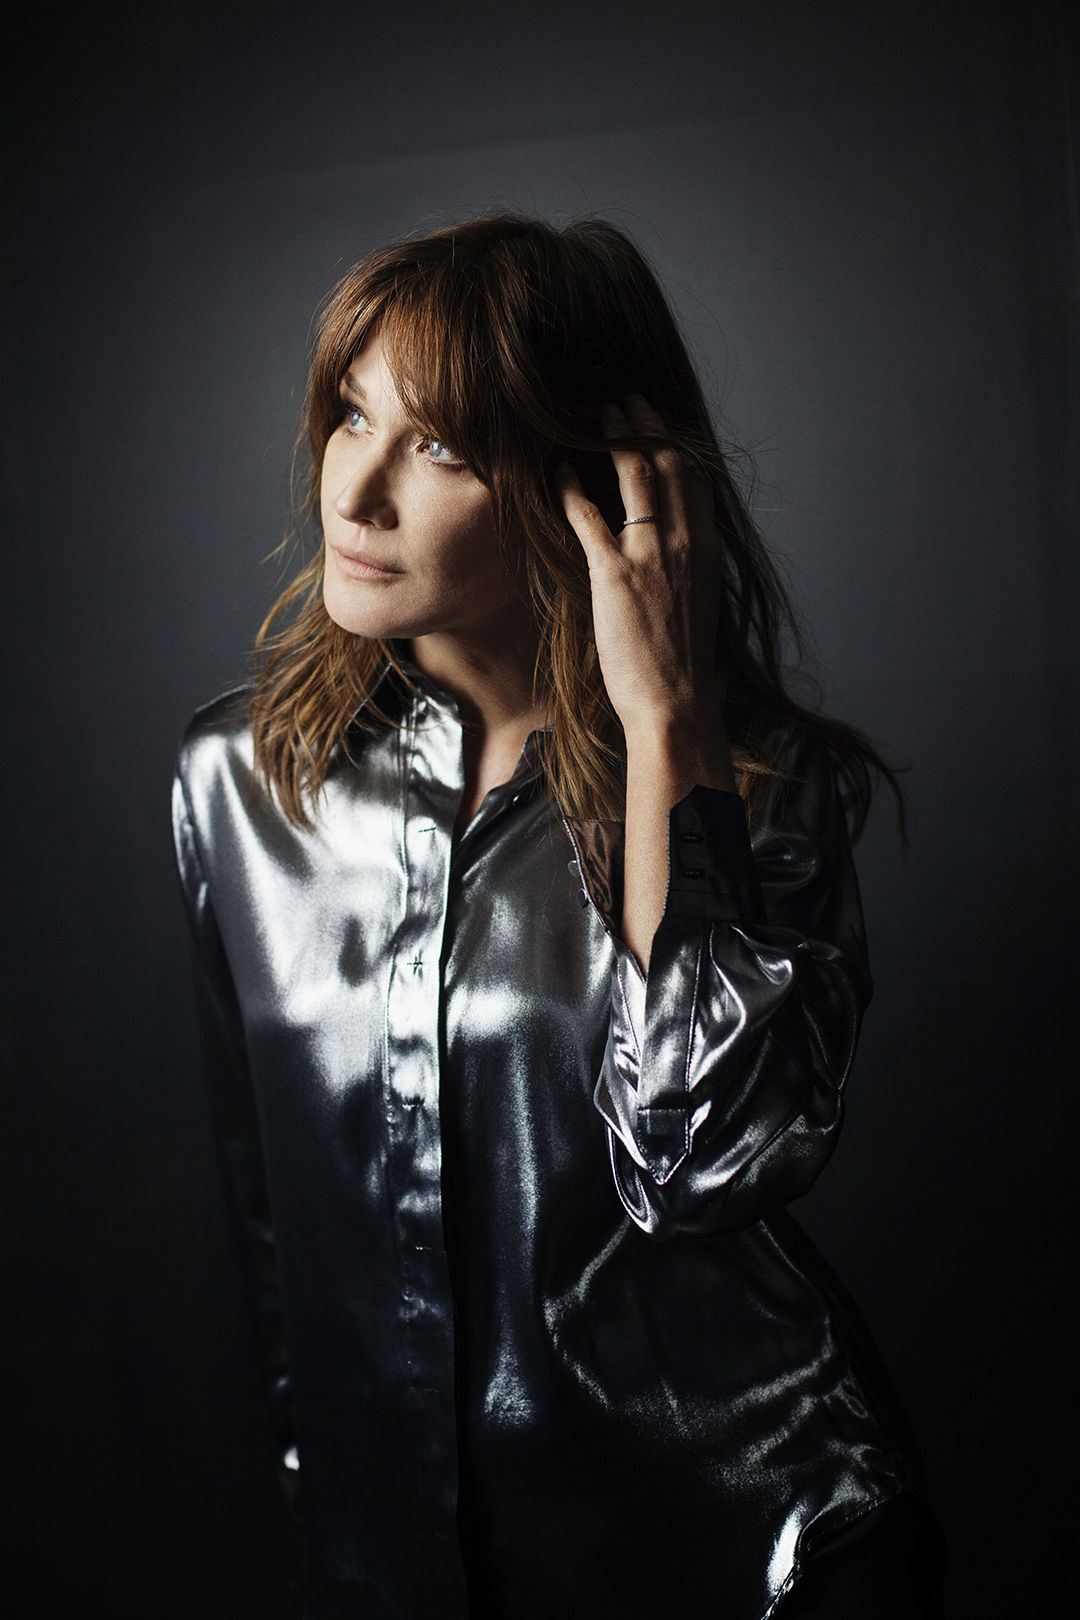 Carla Bruni 2017 Photos Copyright Mathieu Zazzo